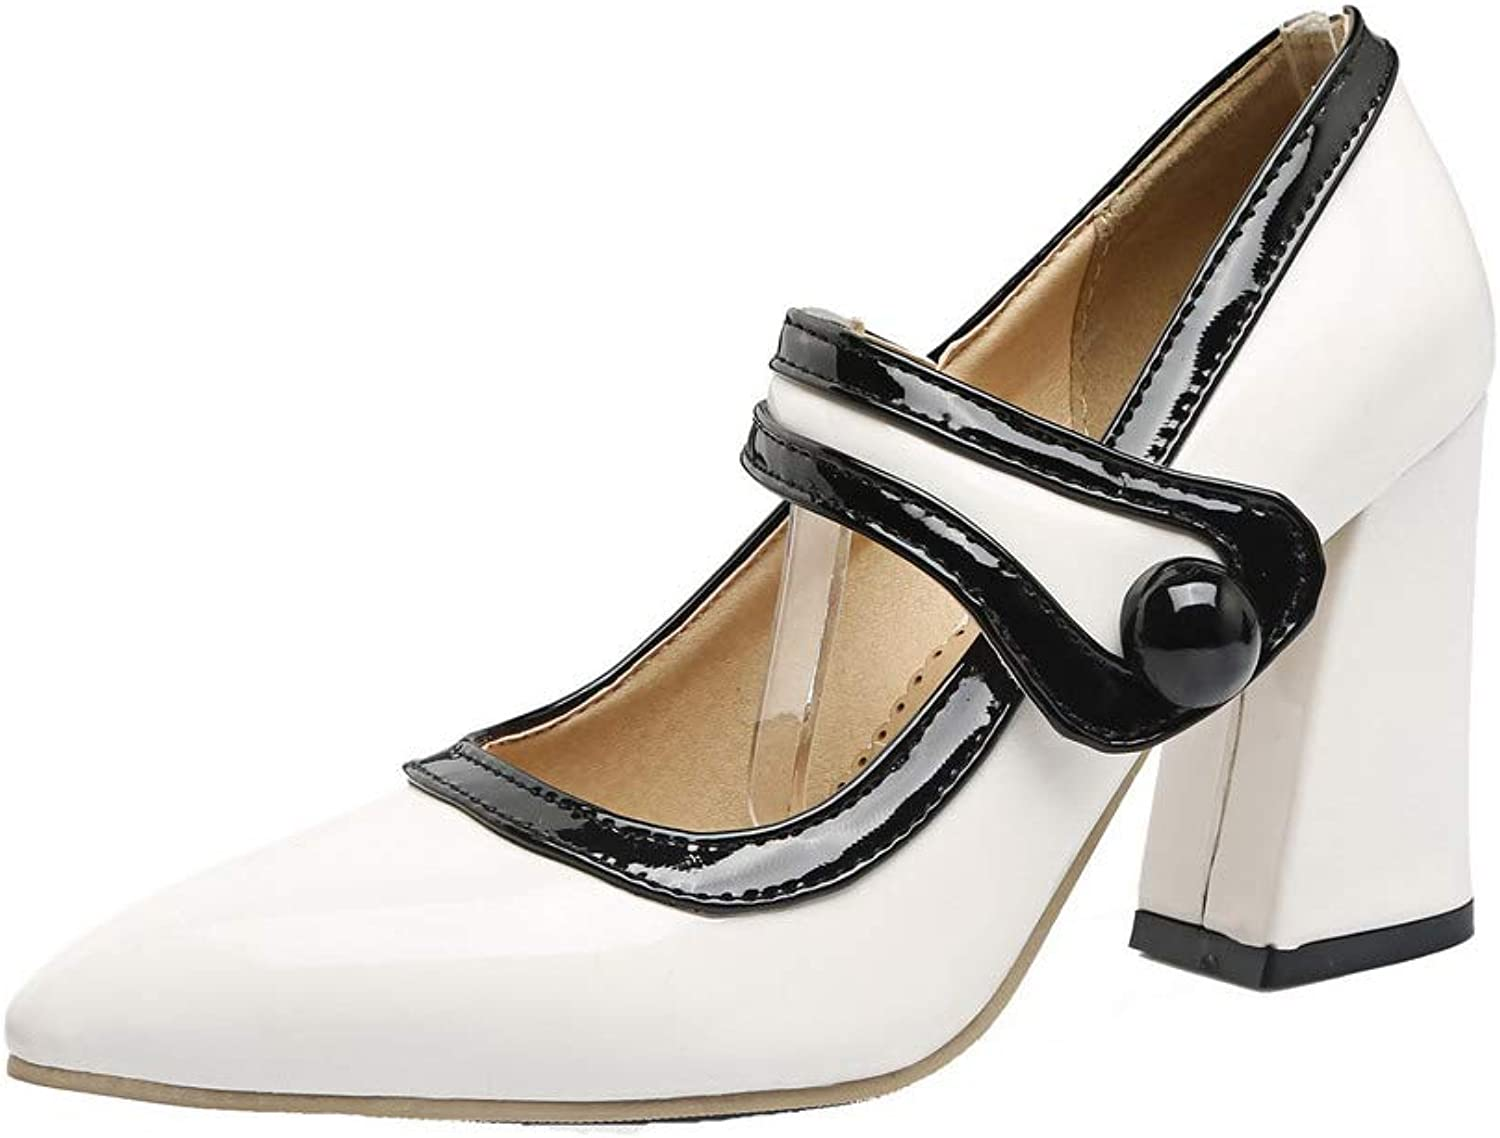 AllhqFashion Women's Patent Leather Pull-On Square Closed Toe Pumps-shoes,FBUDD012056